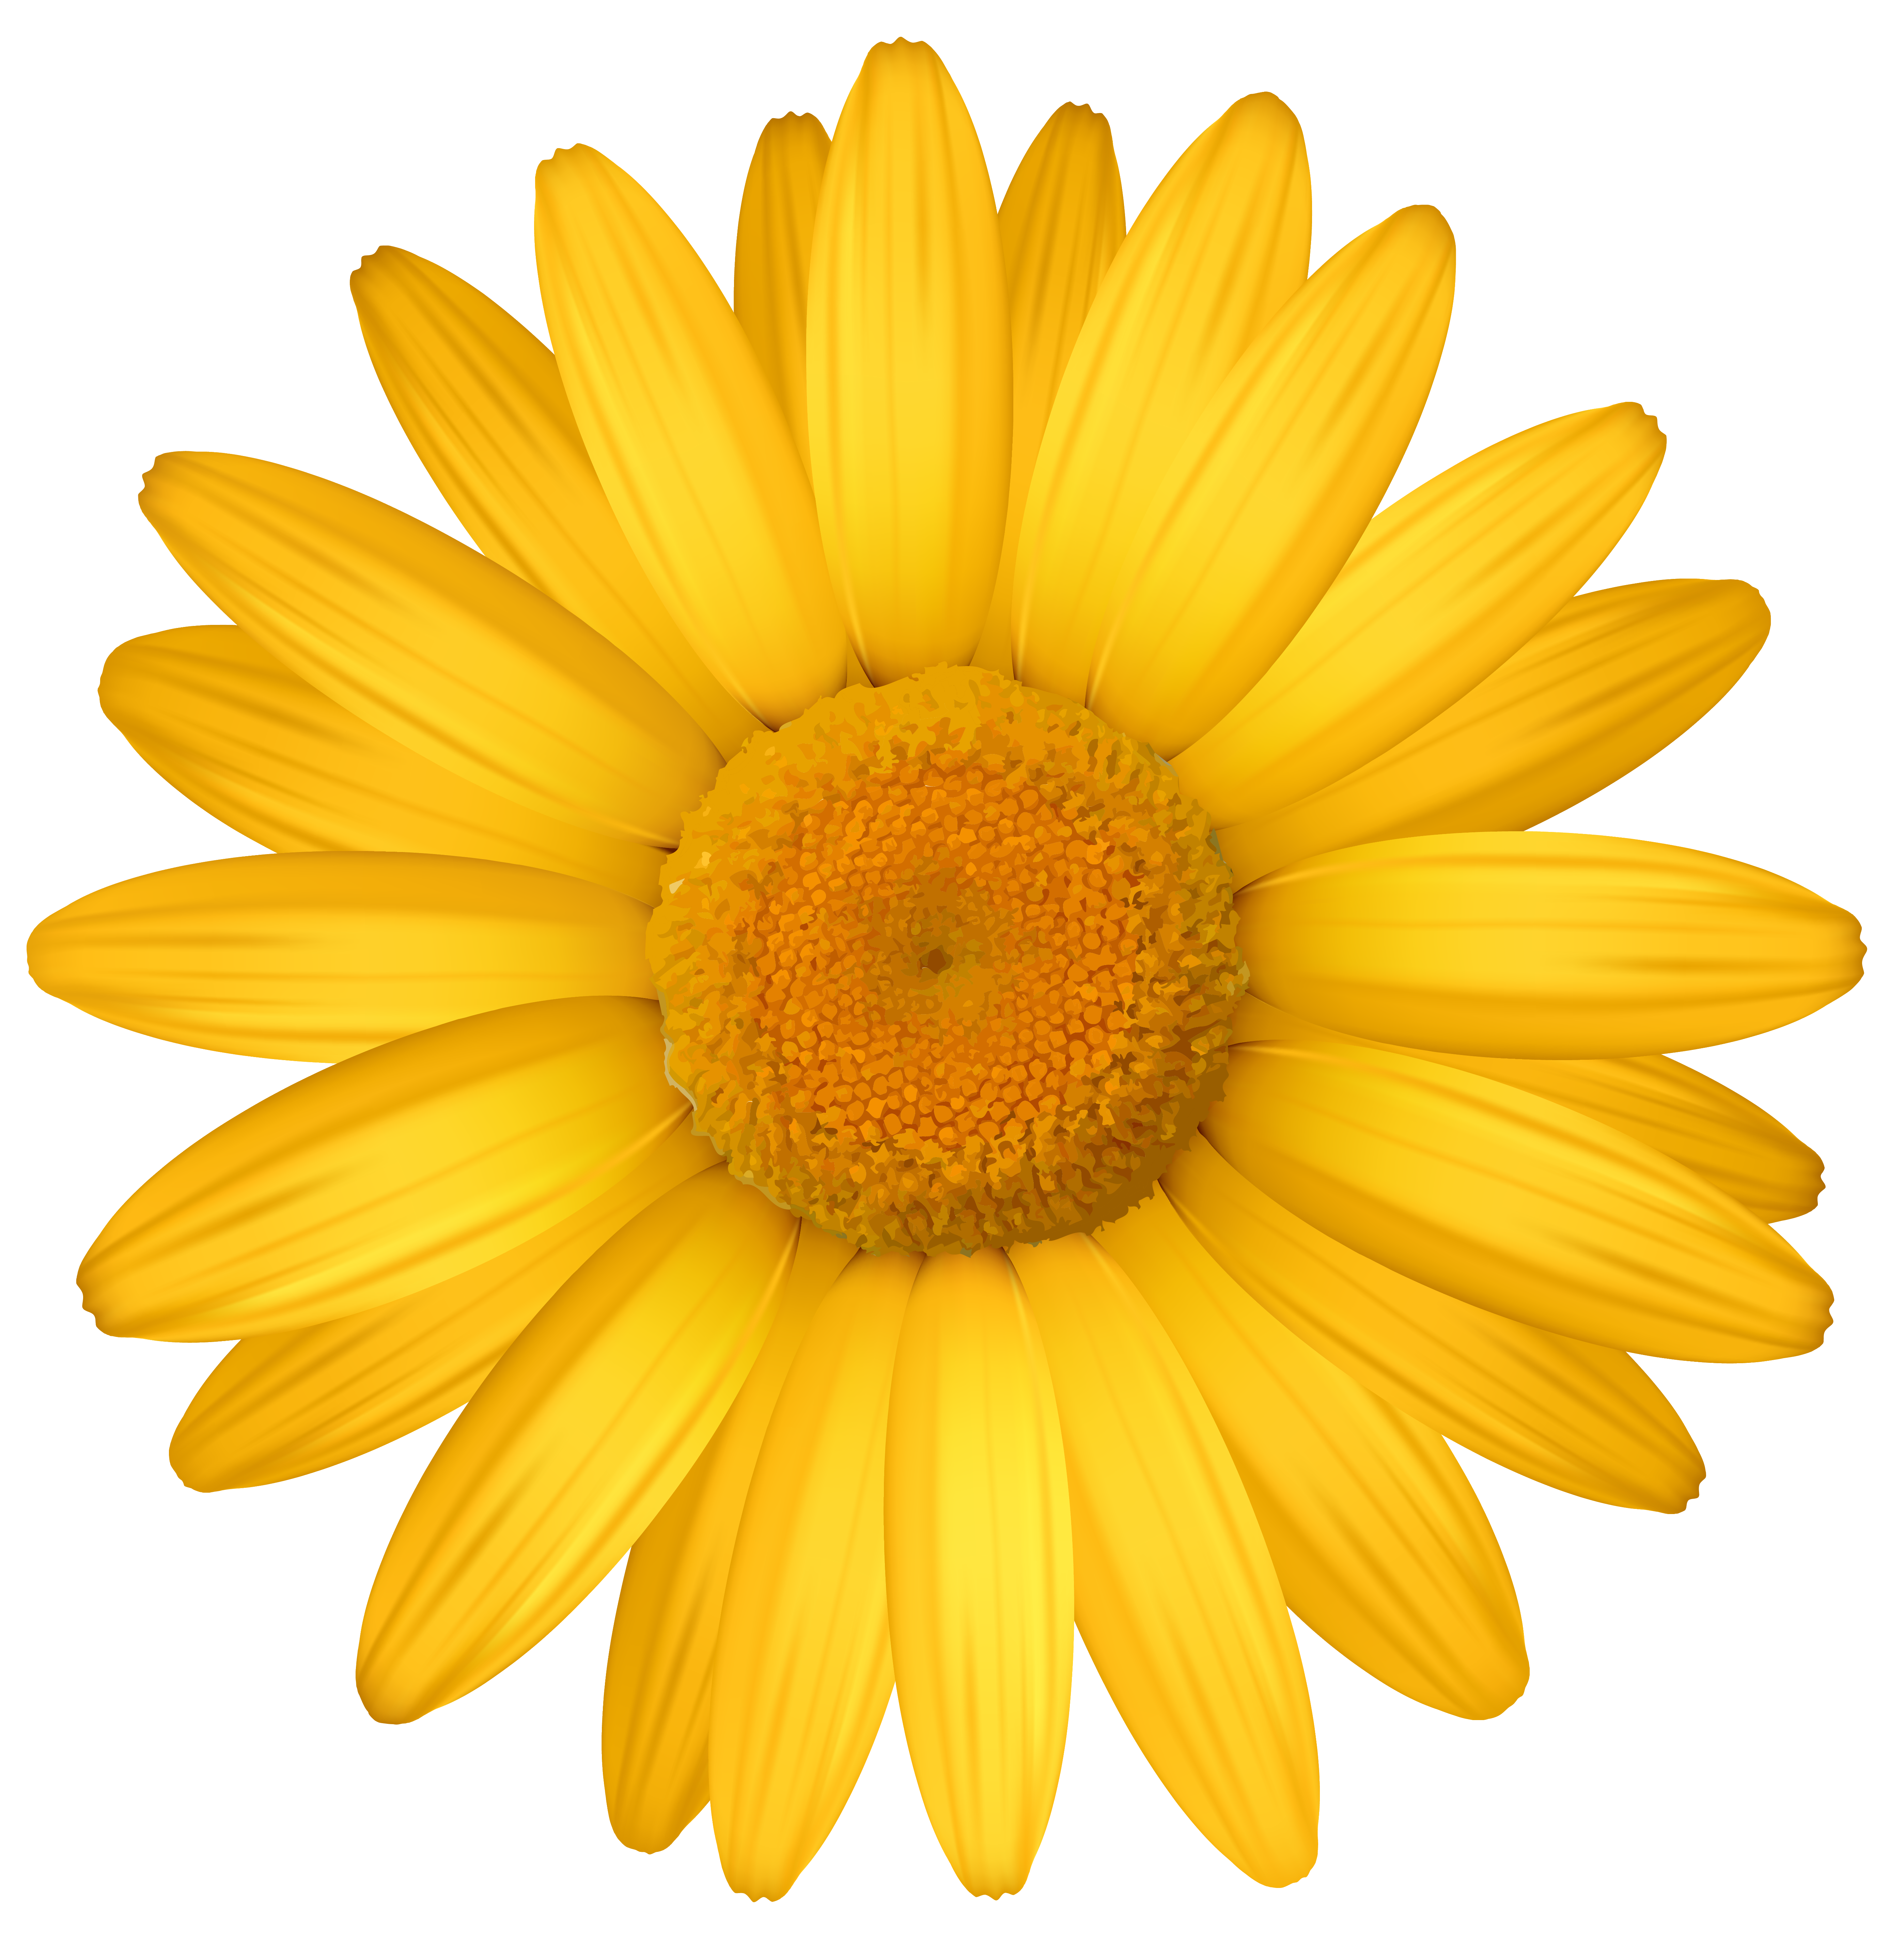 Yellow daisy clipart graphic black and white Yellow Daisy PNG Clipart Image | Gallery Yopriceville ... graphic black and white